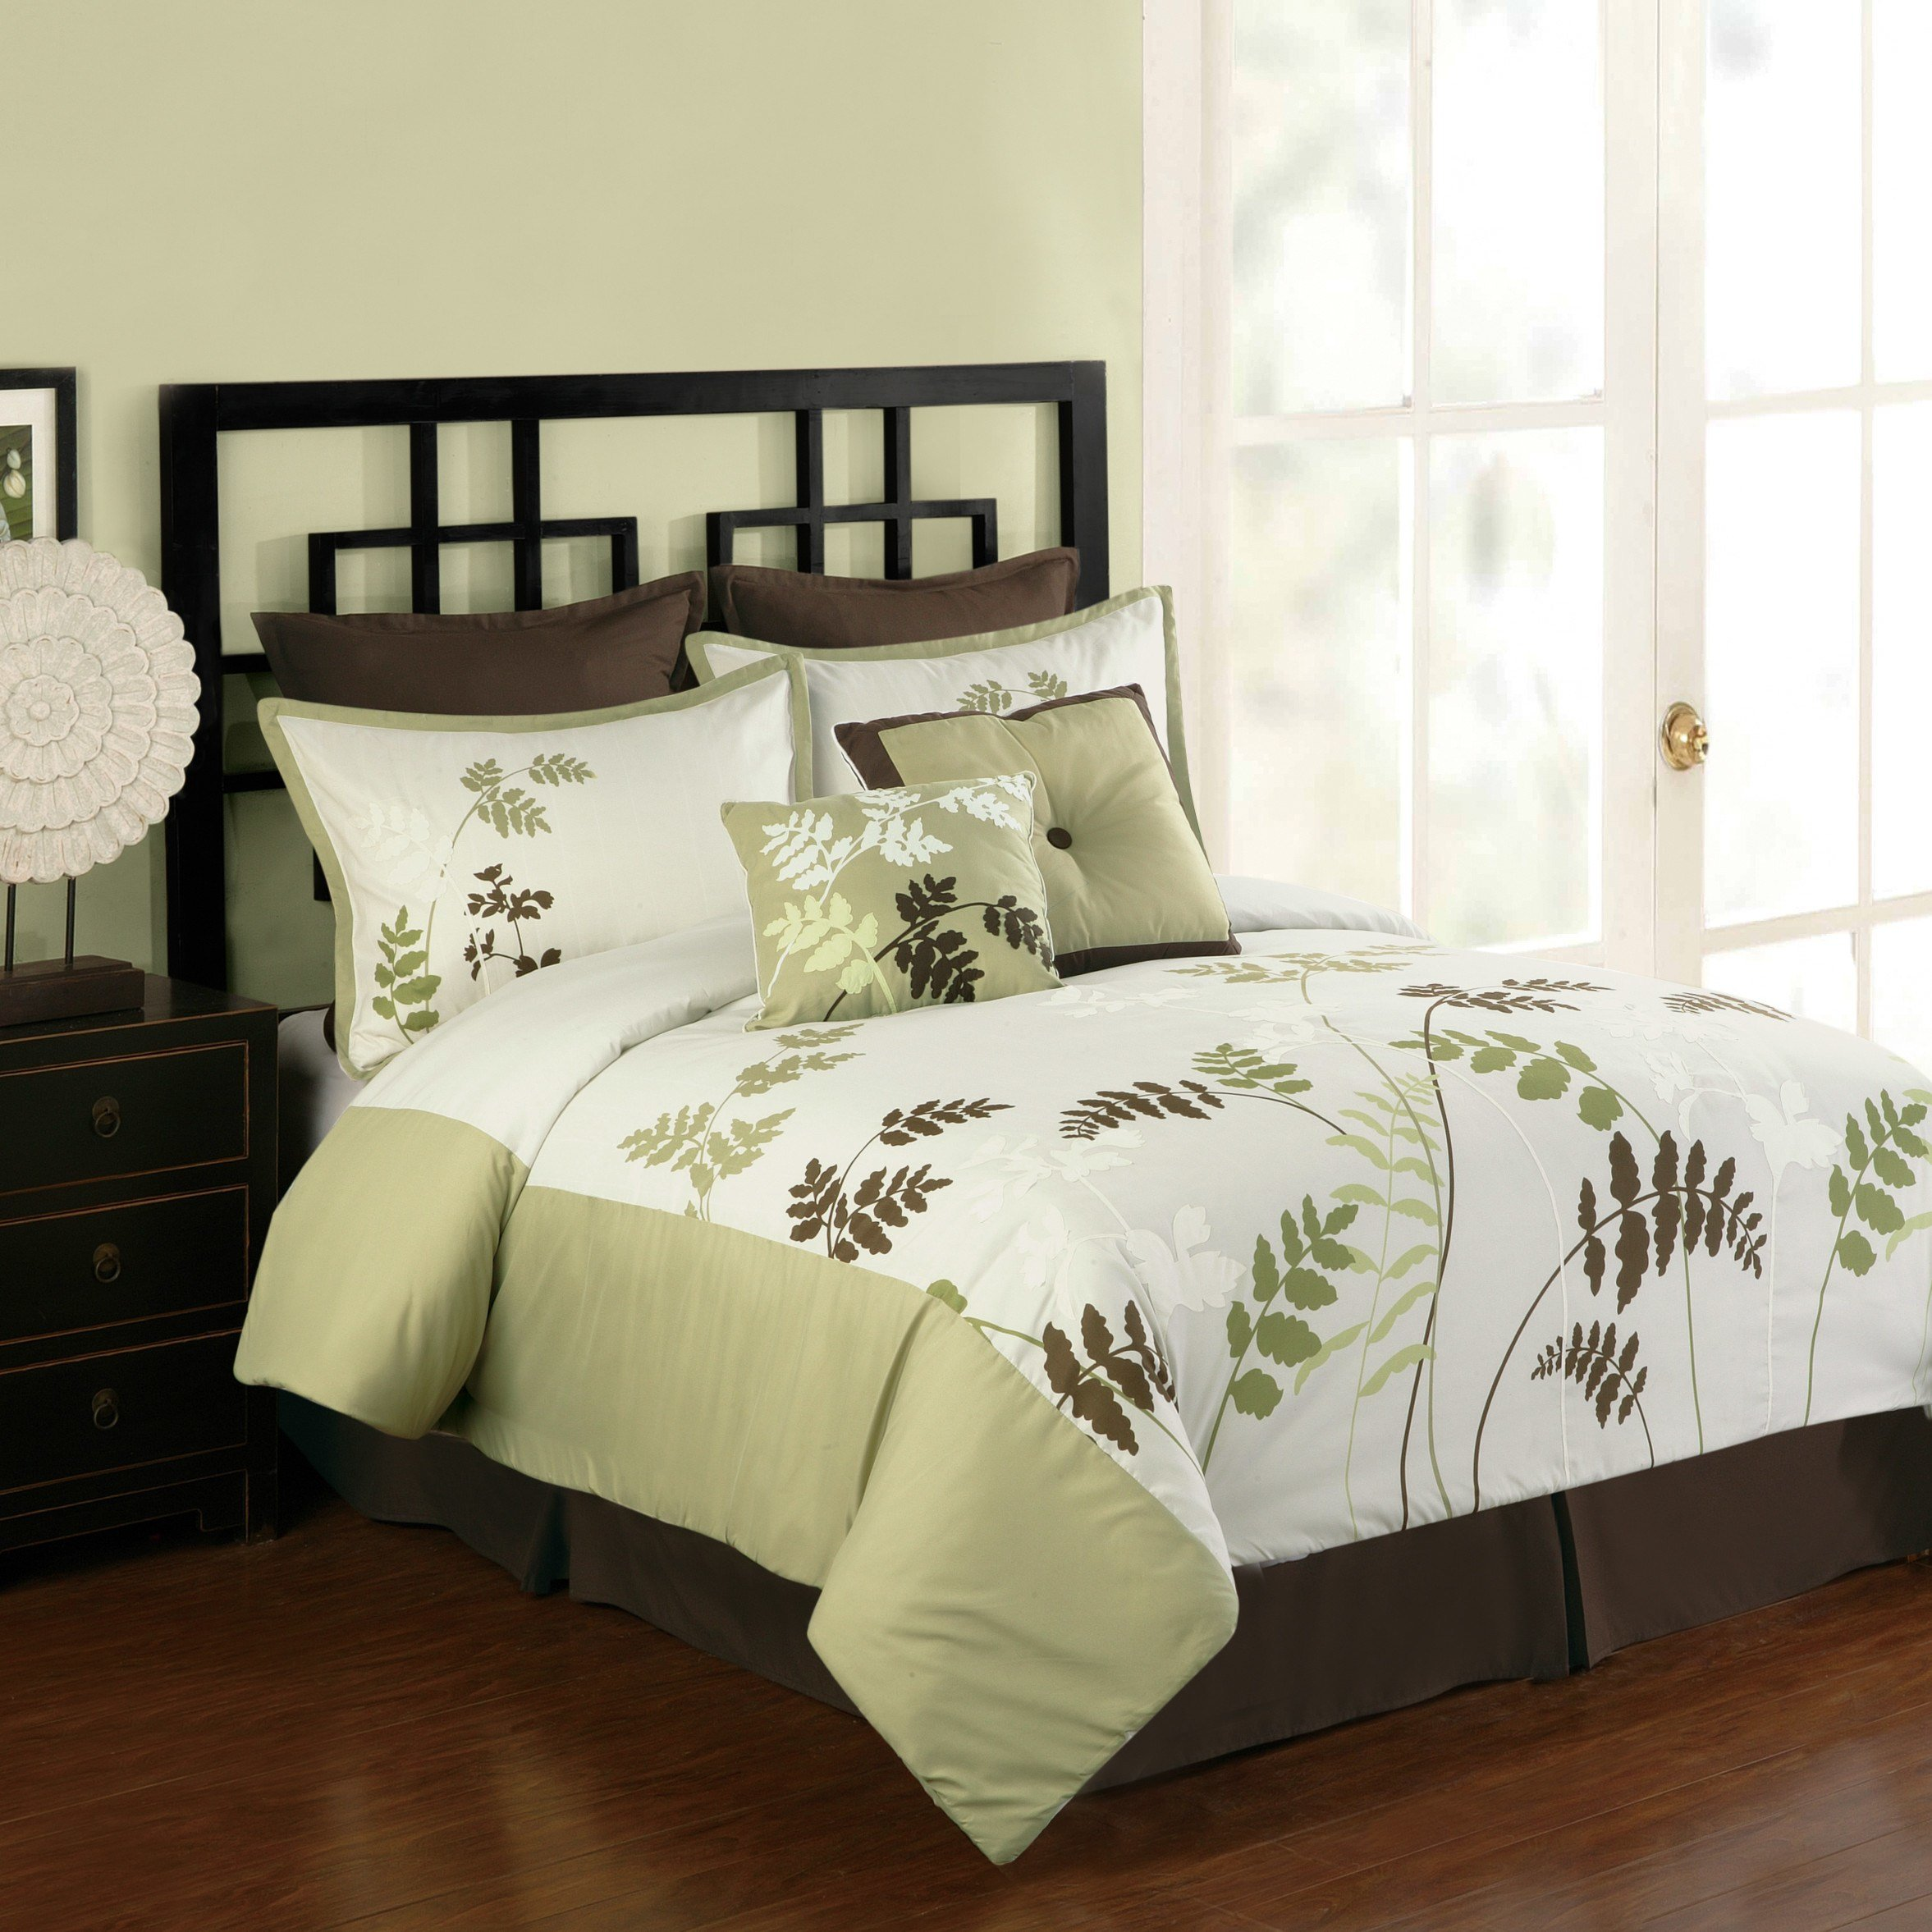 Best Presidio Square Meadowland 8 Piece Comforter Set Reviews With Pictures